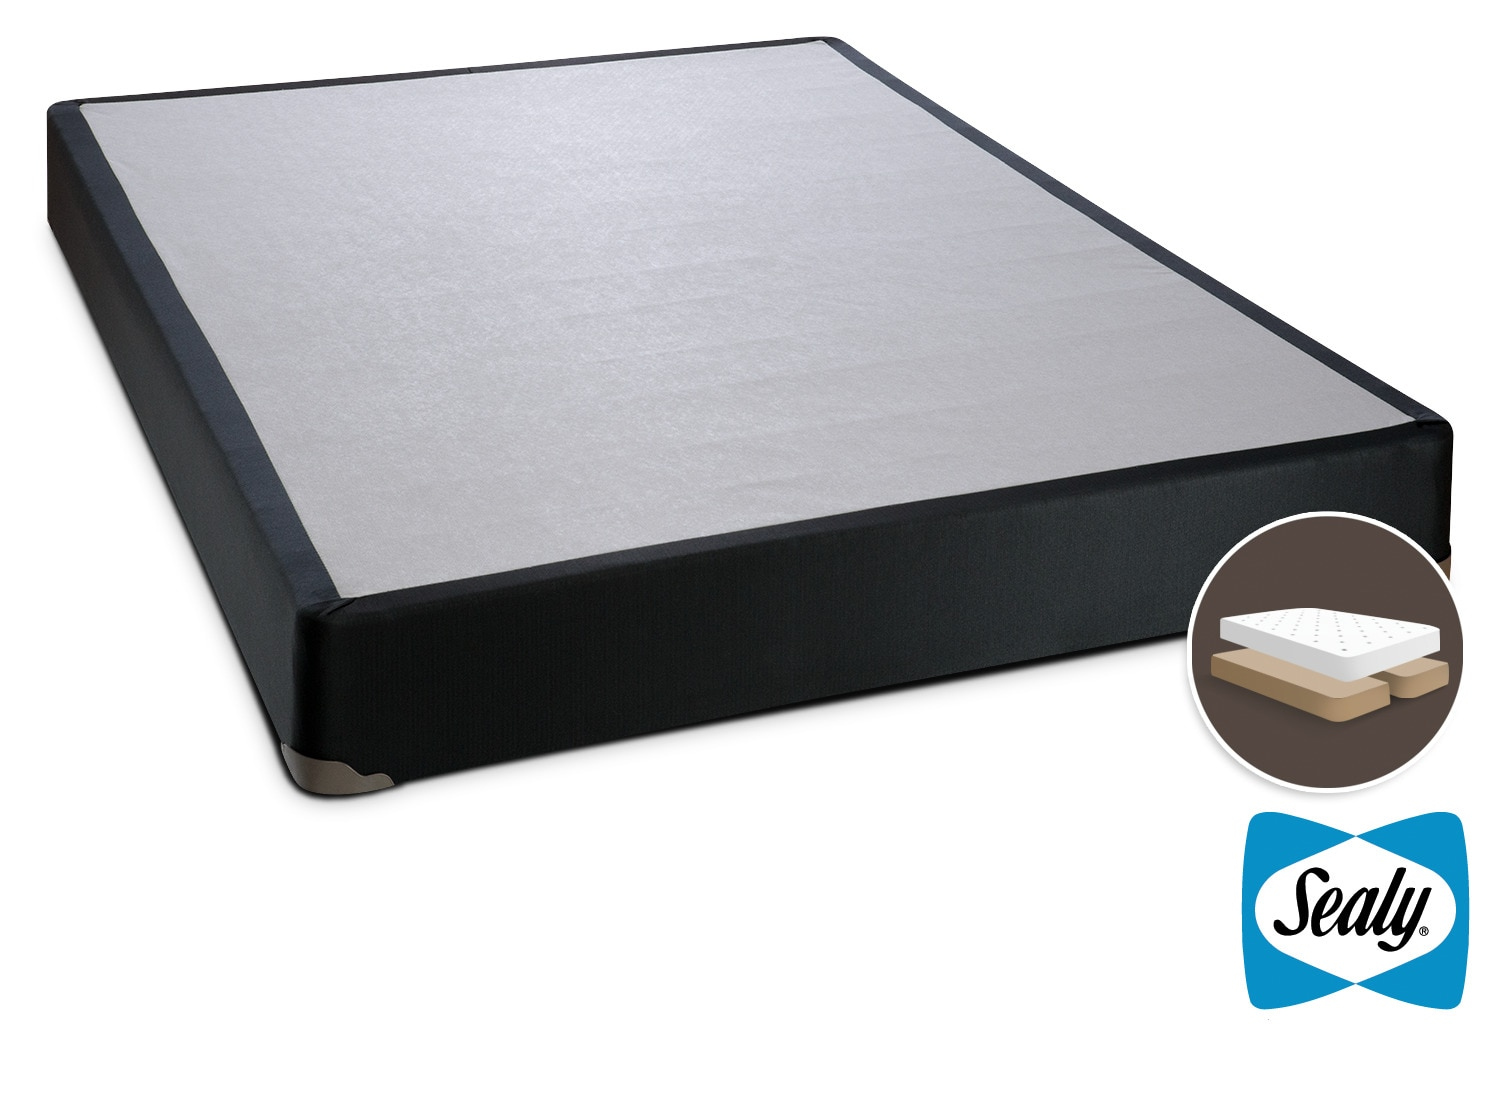 Matelas et sommiers - Sealy Charcoal Luxe Demi-sommier très grand